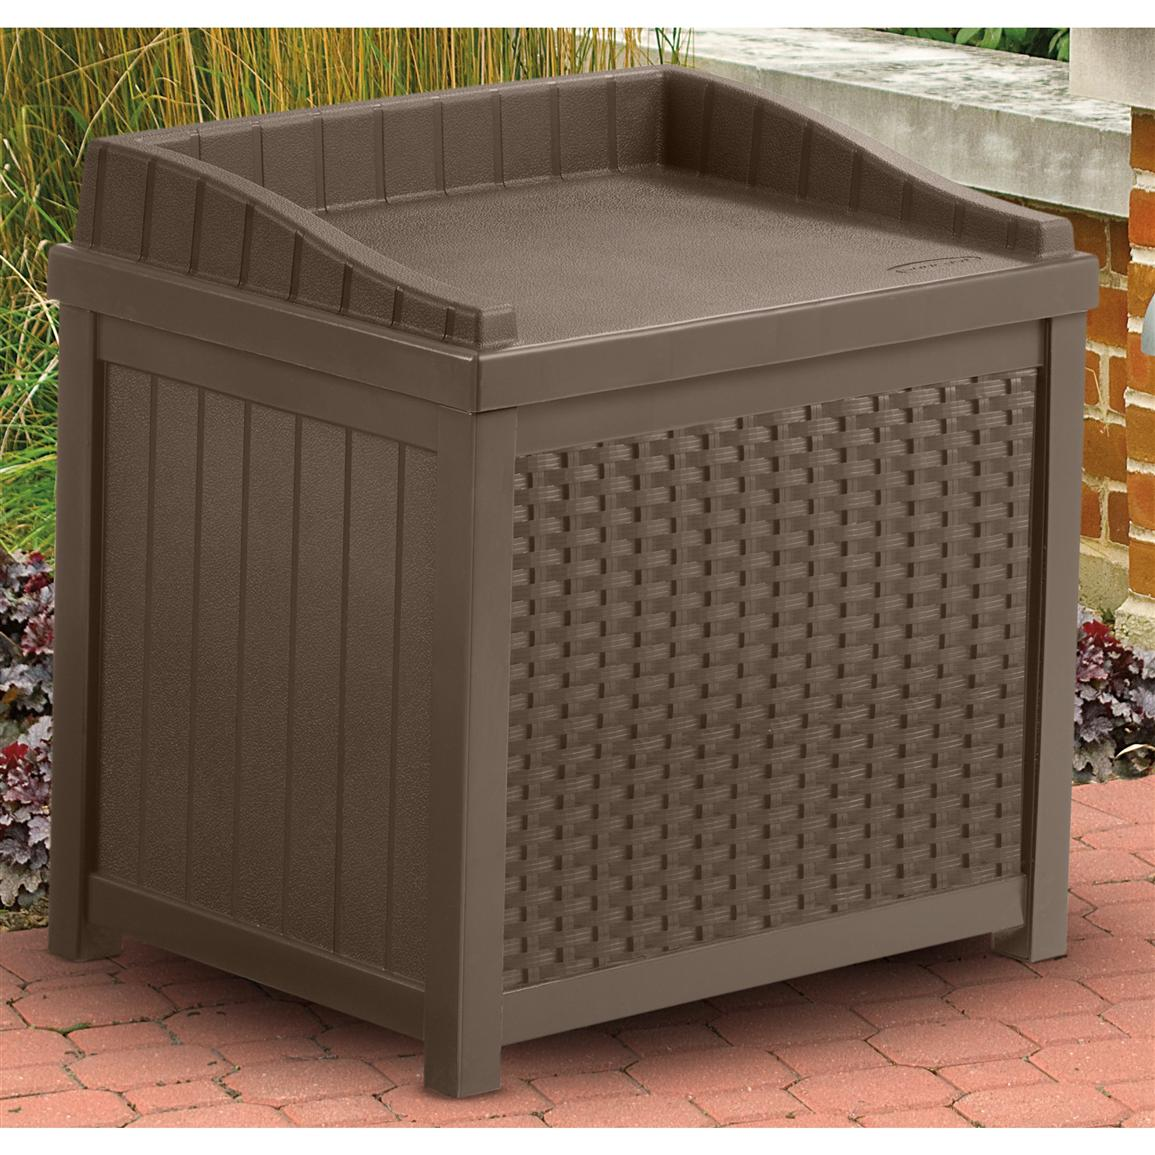 small Suncast Deck Box Ideas in dark grey with seat for patio furniture ideas